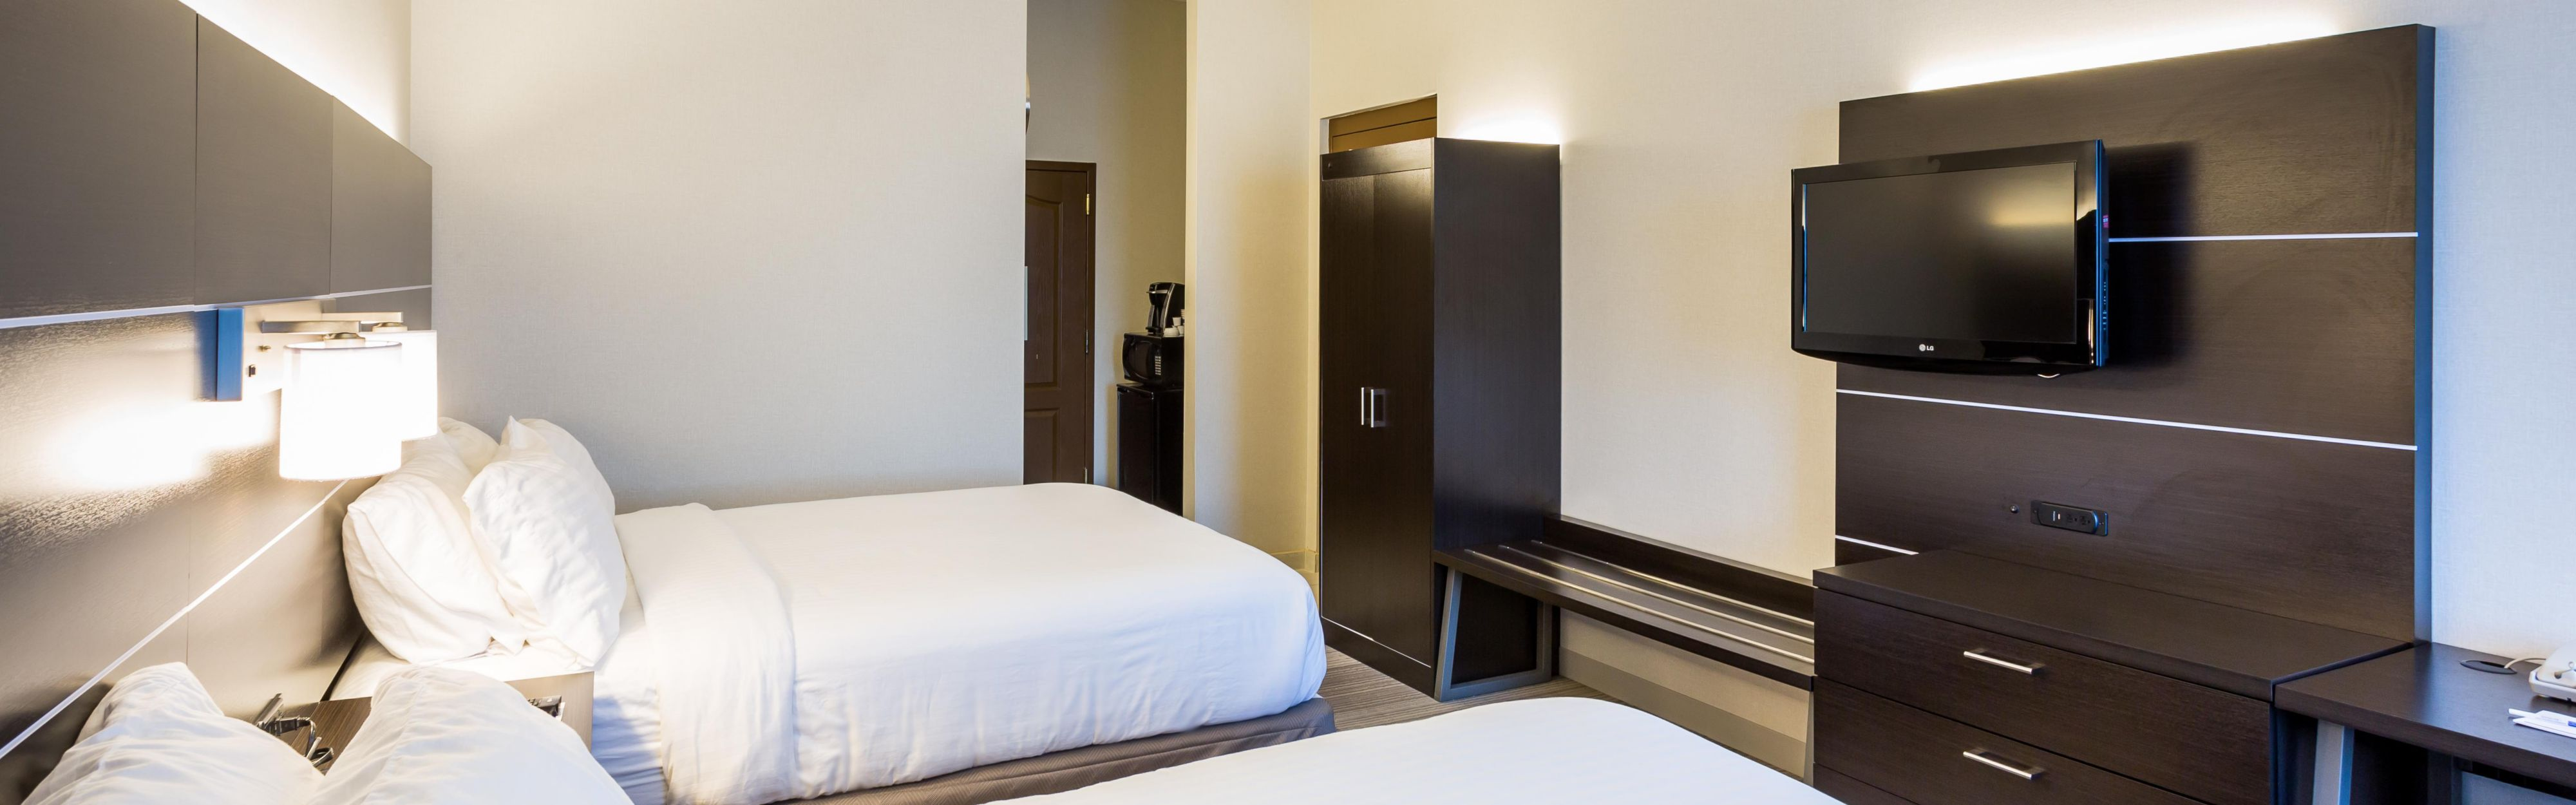 Holiday Inn Express & Suites Reading Airport image 1